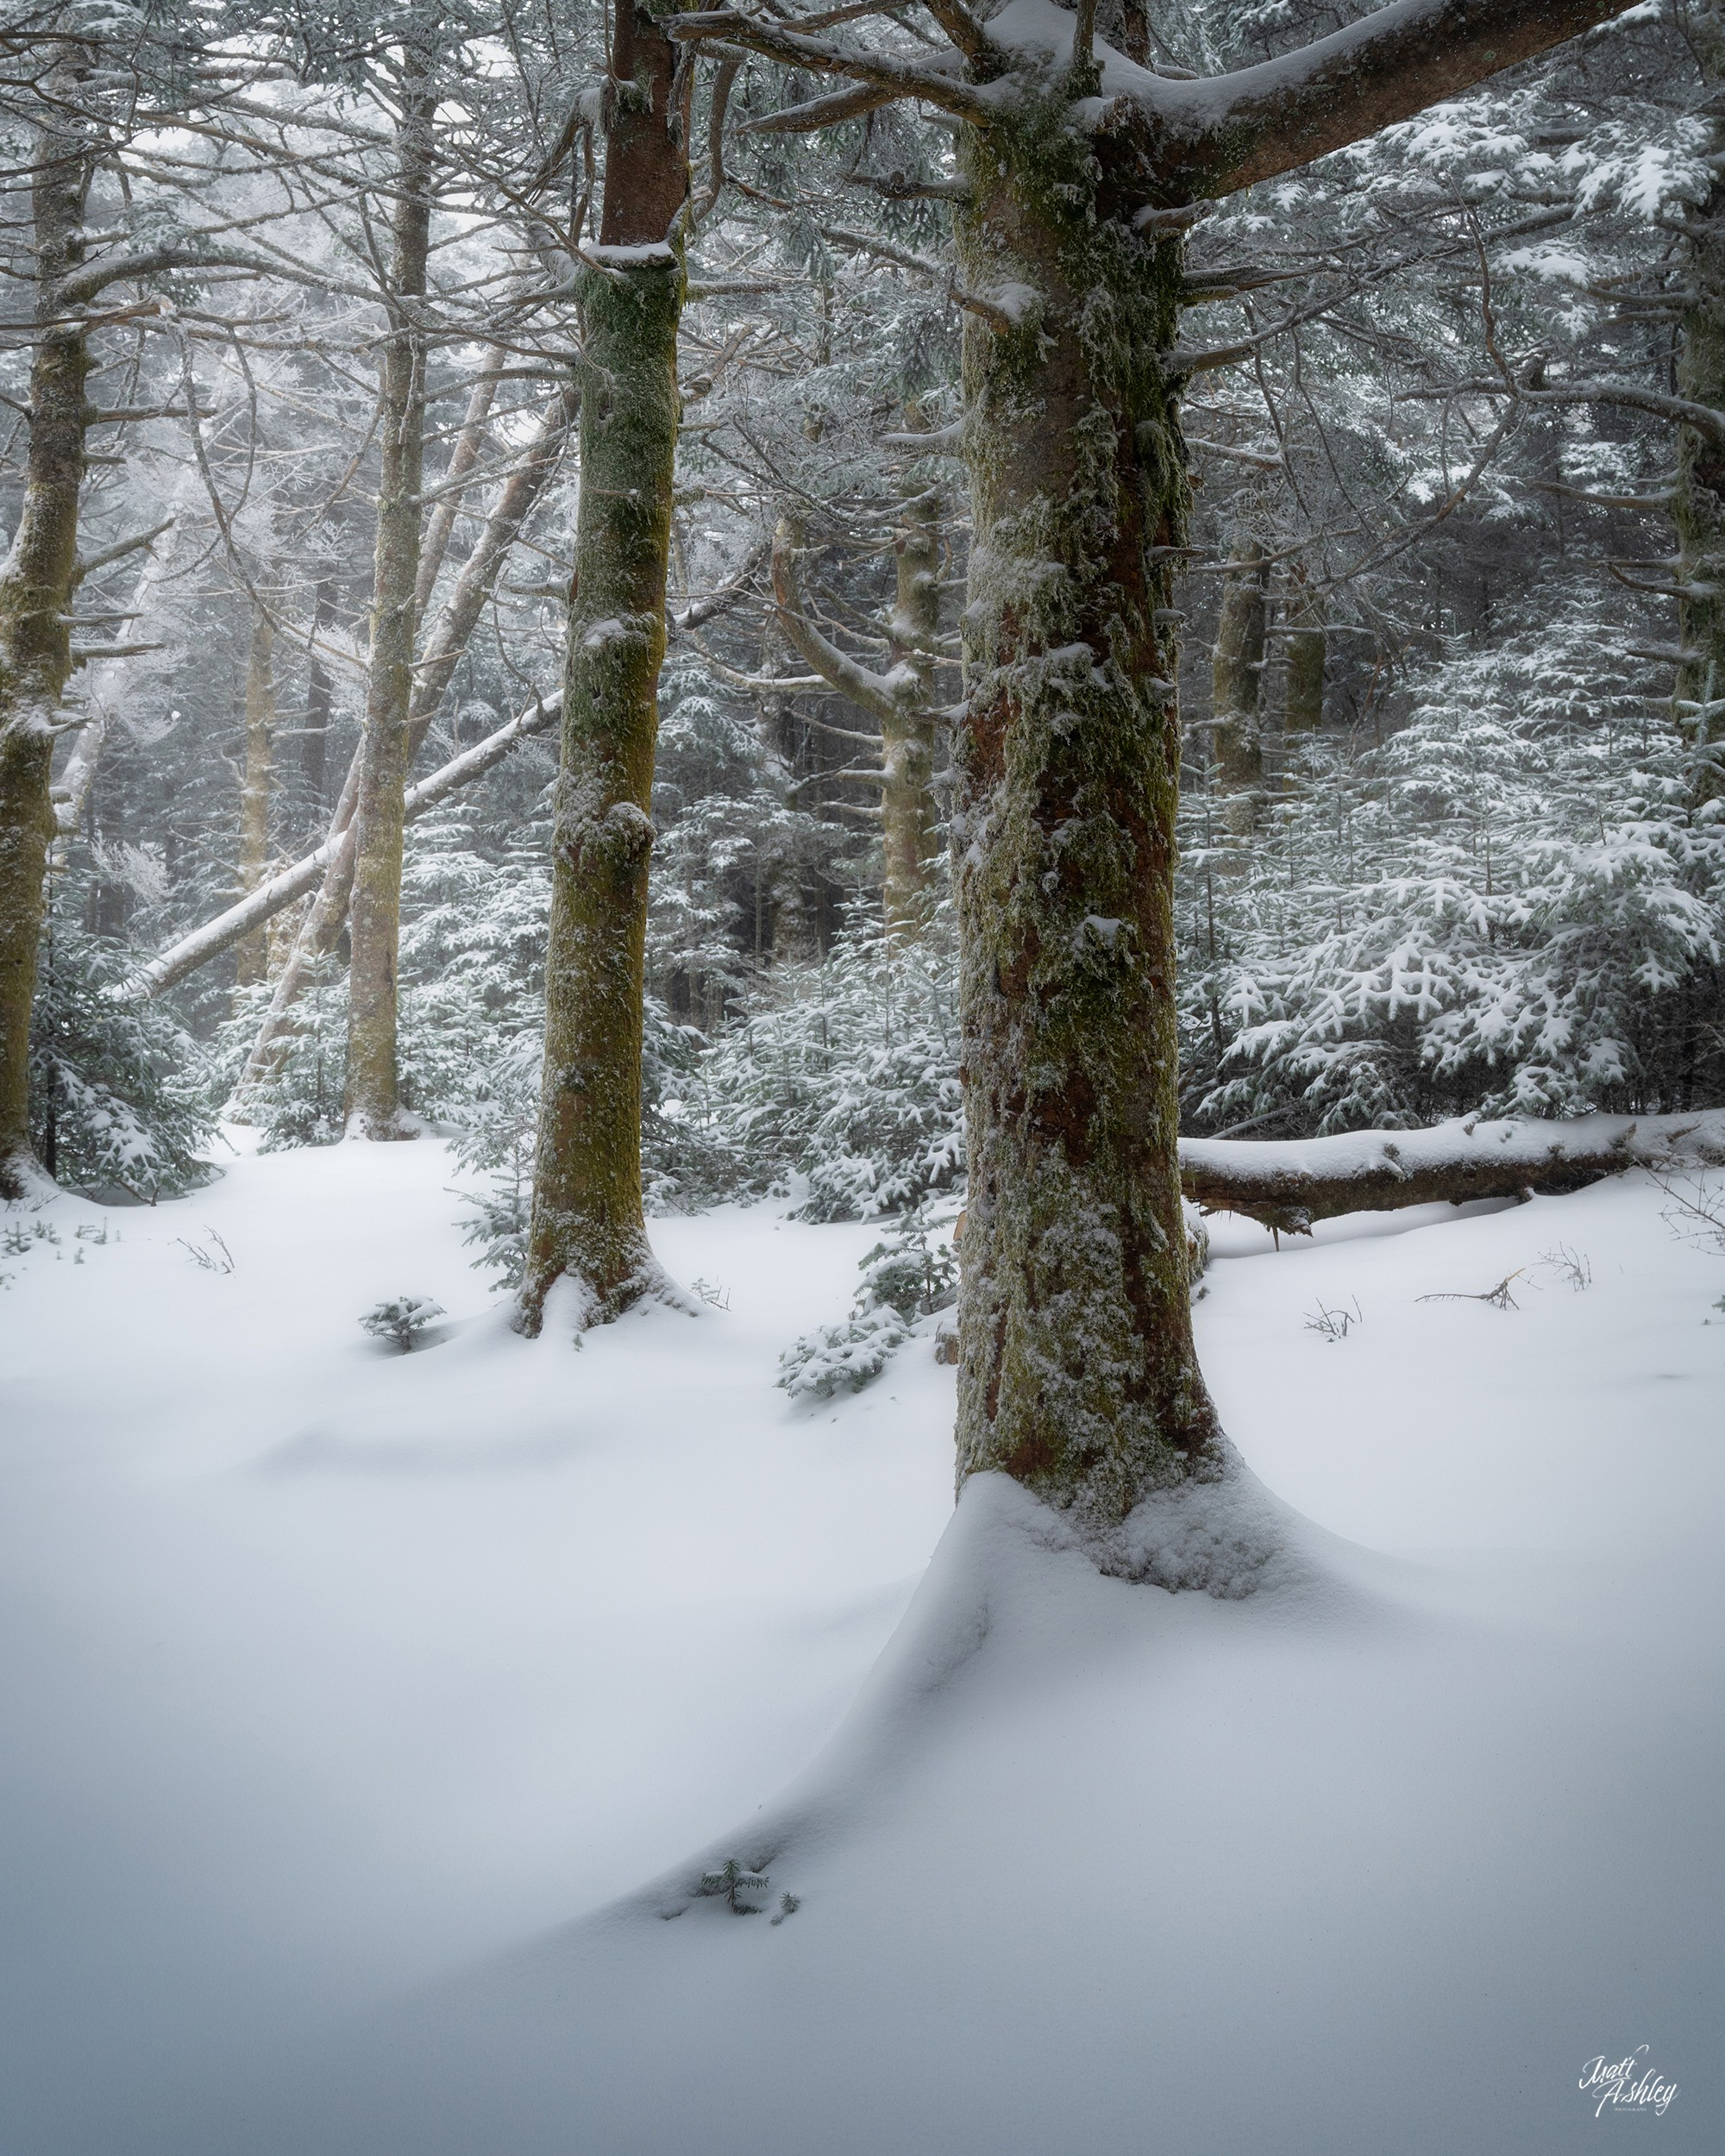 Snow covered woodland scene.